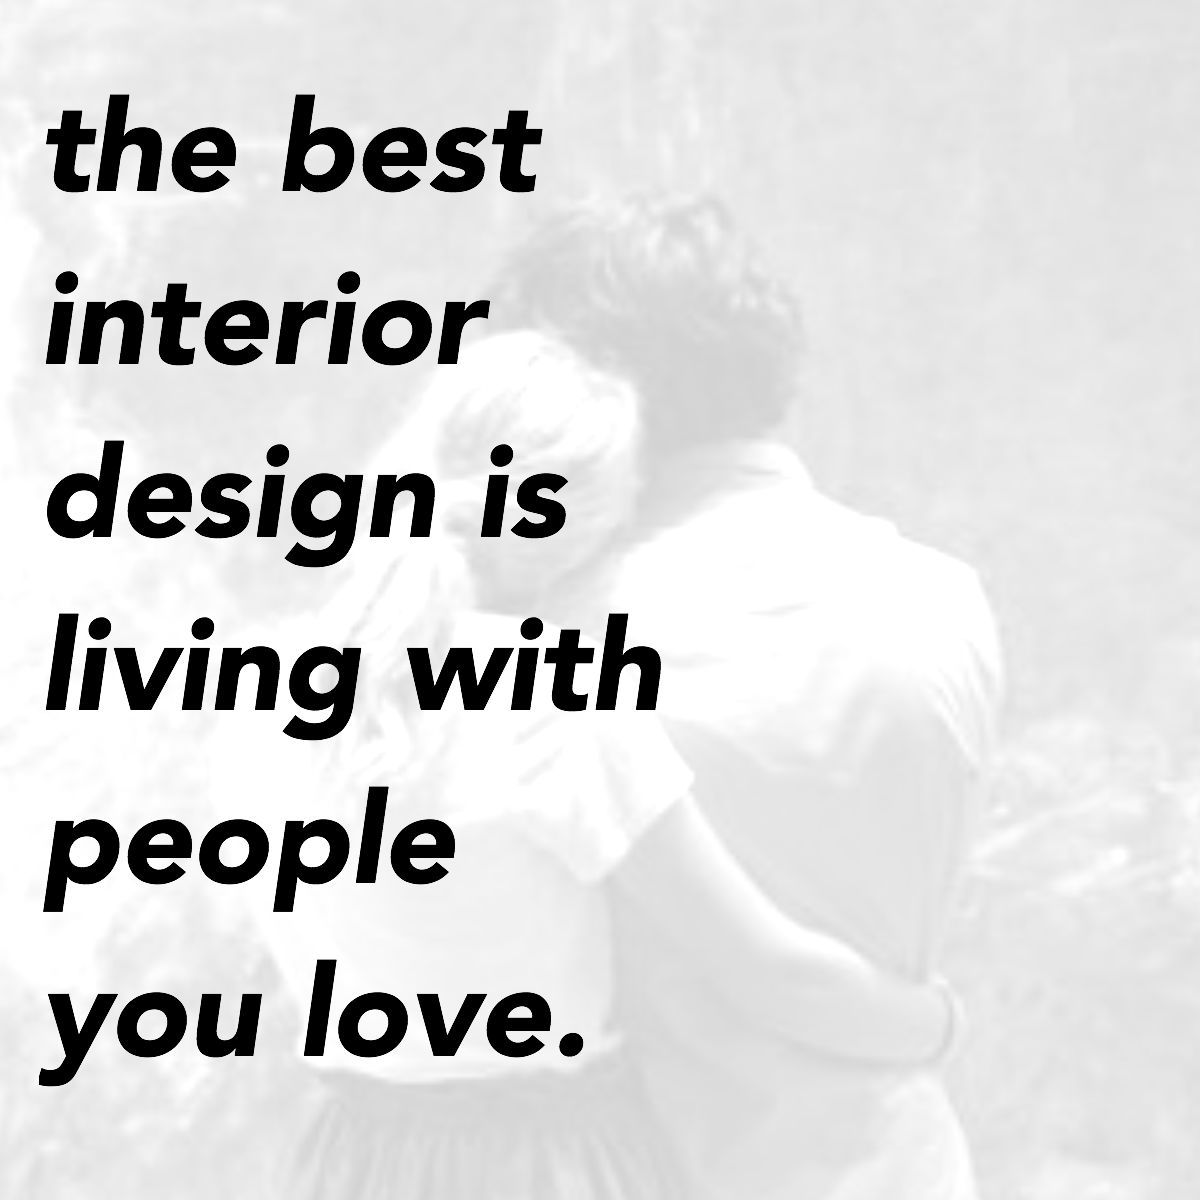 Interior Design Quotes The Best Interior Design Is Living With People You Loveunknown